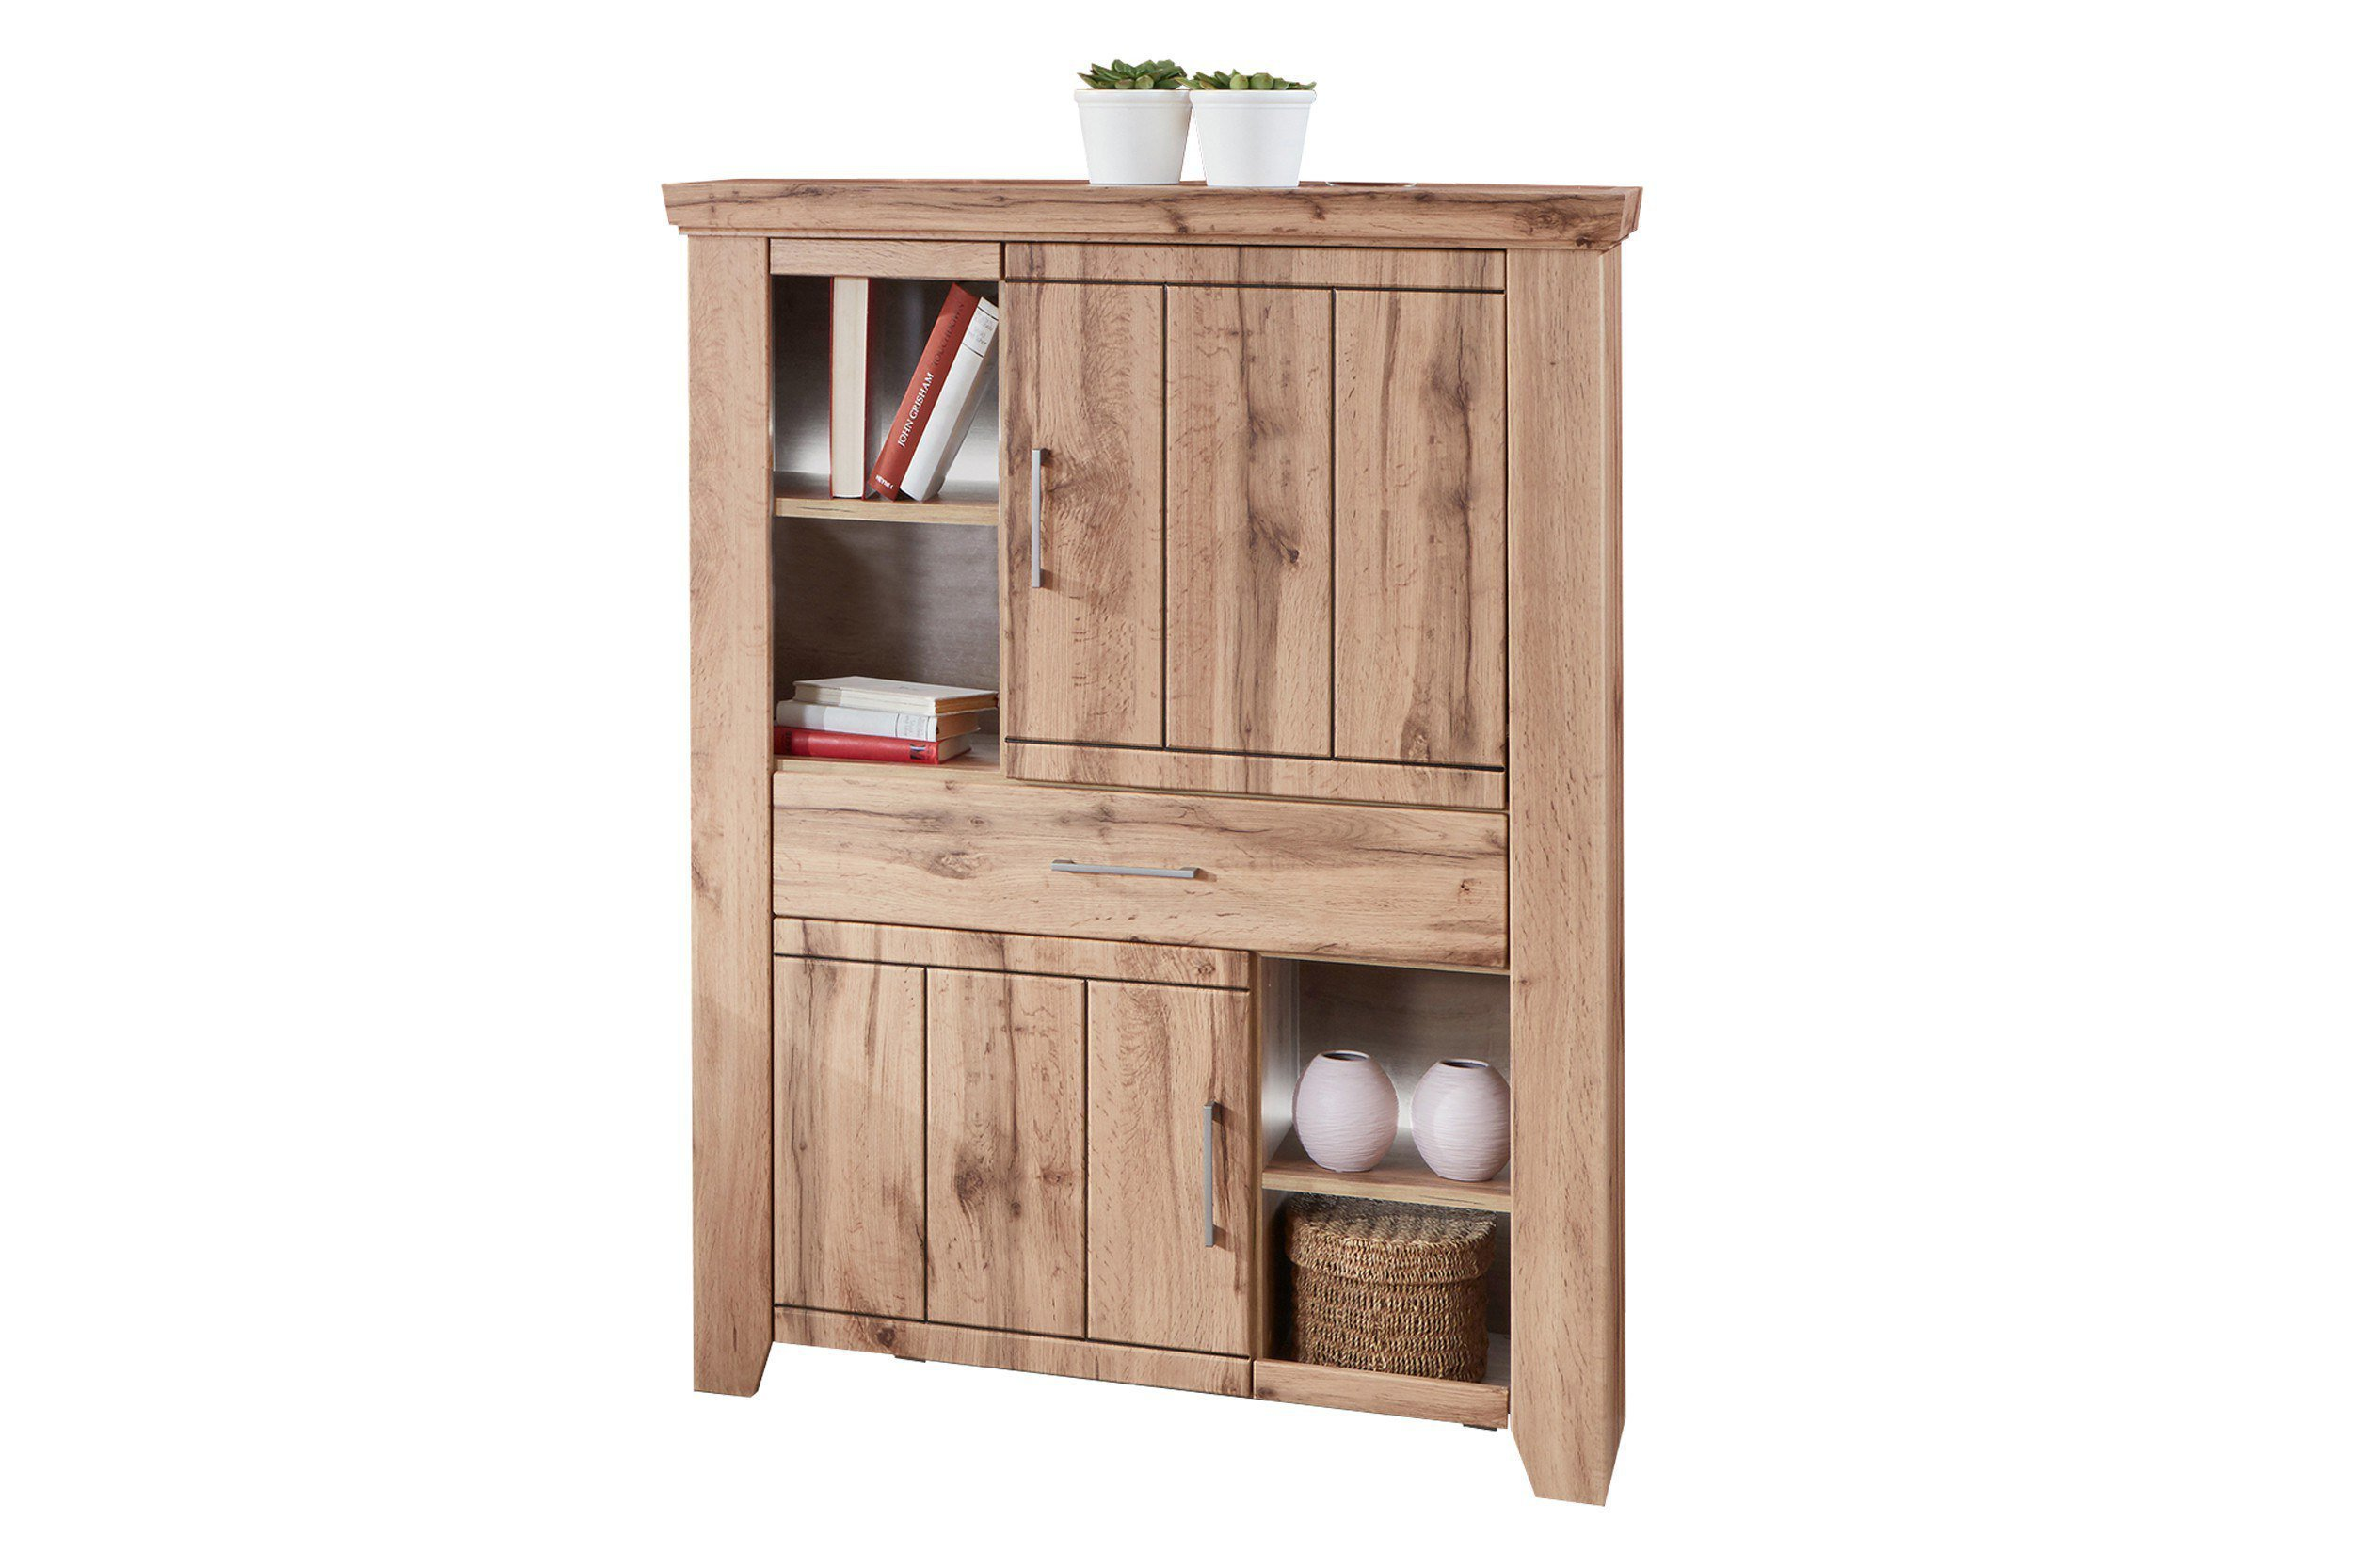 Günstige Möbel Online Shops Ideal Möbel Highboard Stromberg Wotan Eiche Möbel Letz